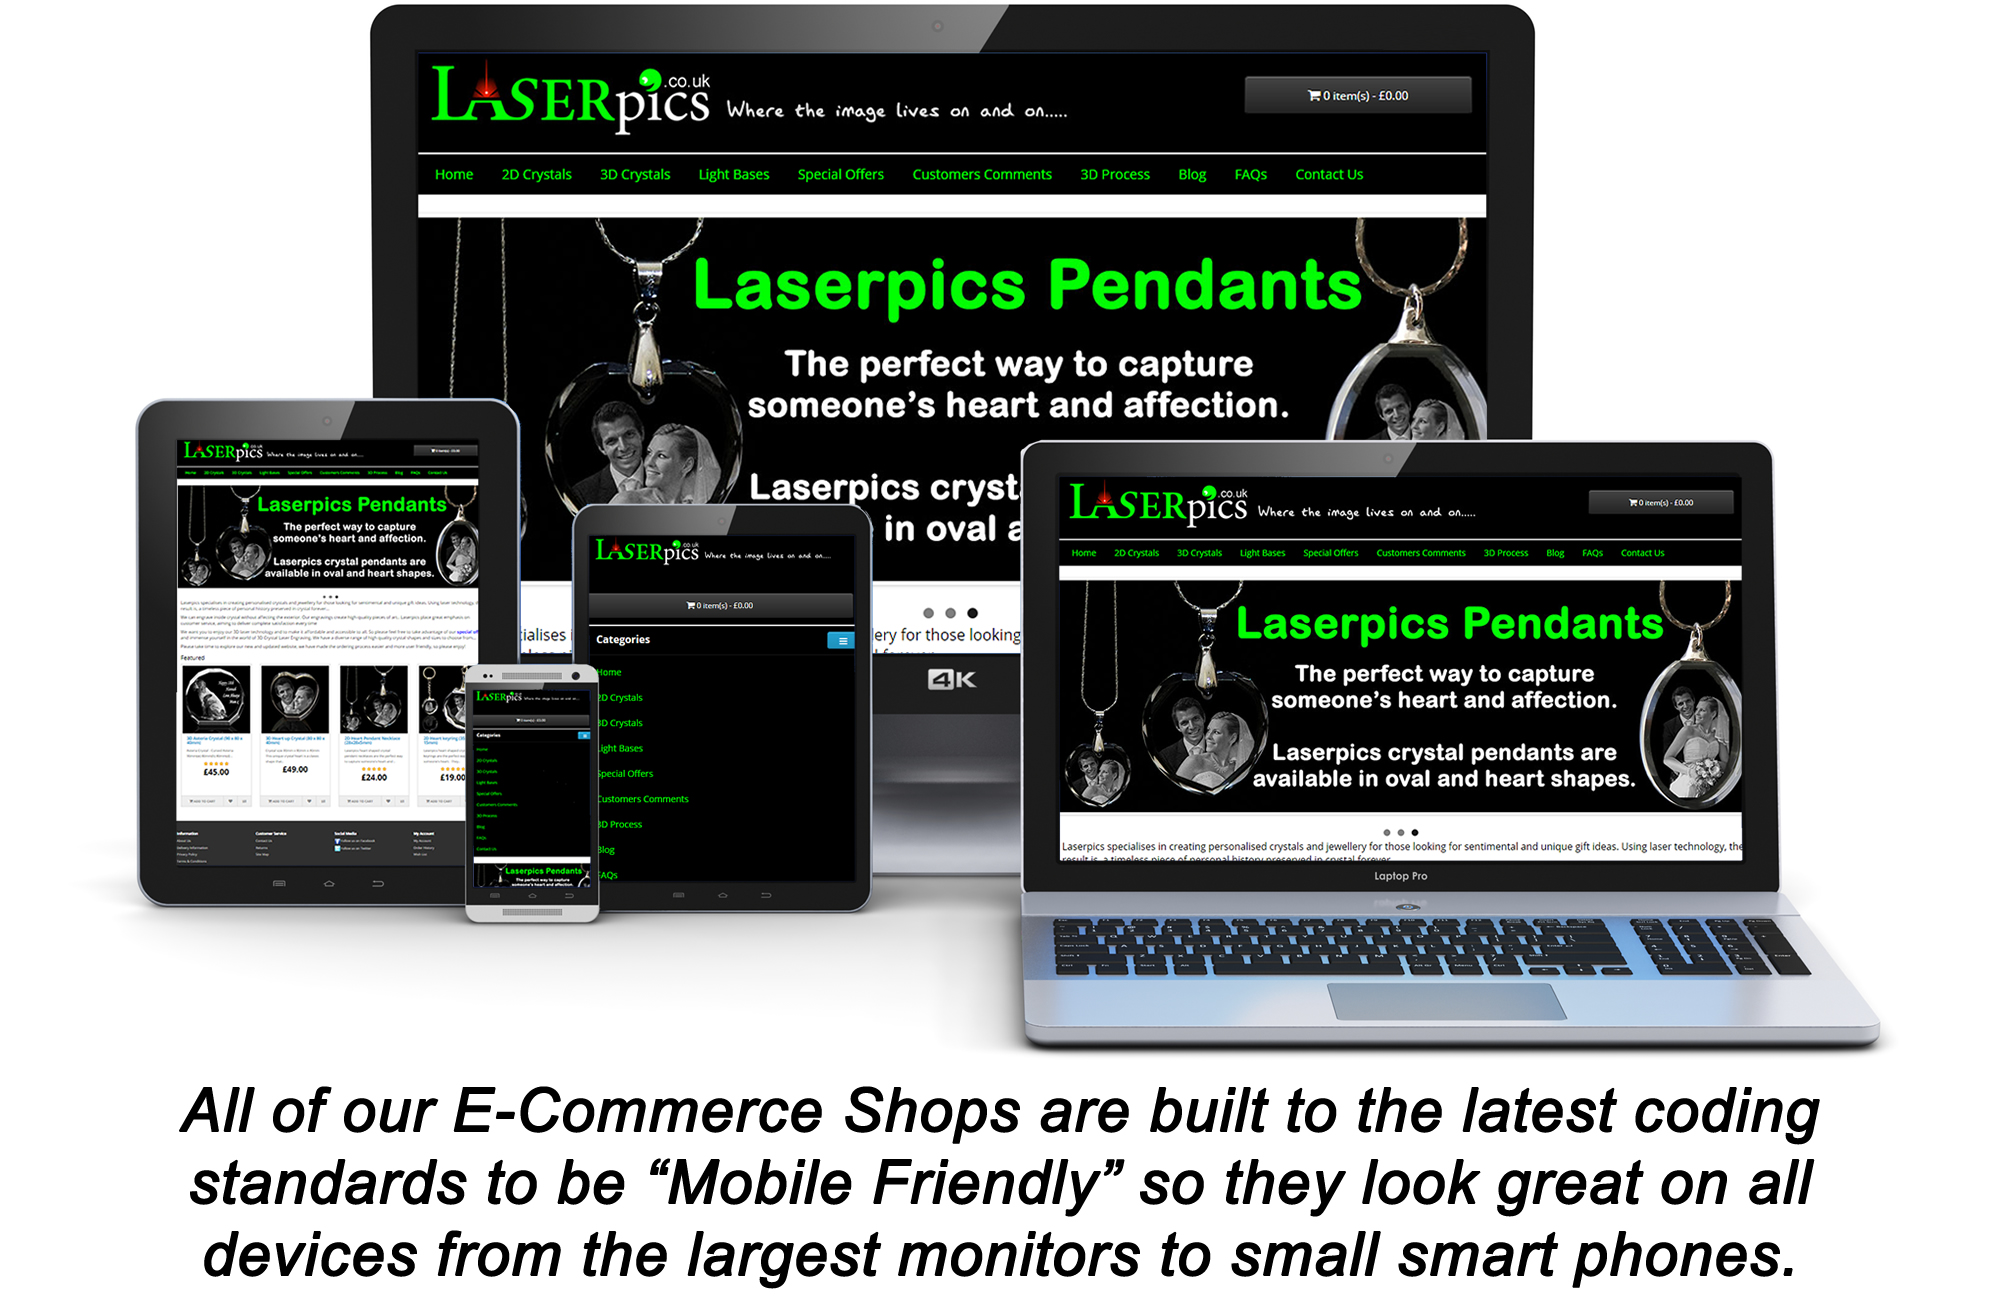 Mobile friendly ecommerce stores